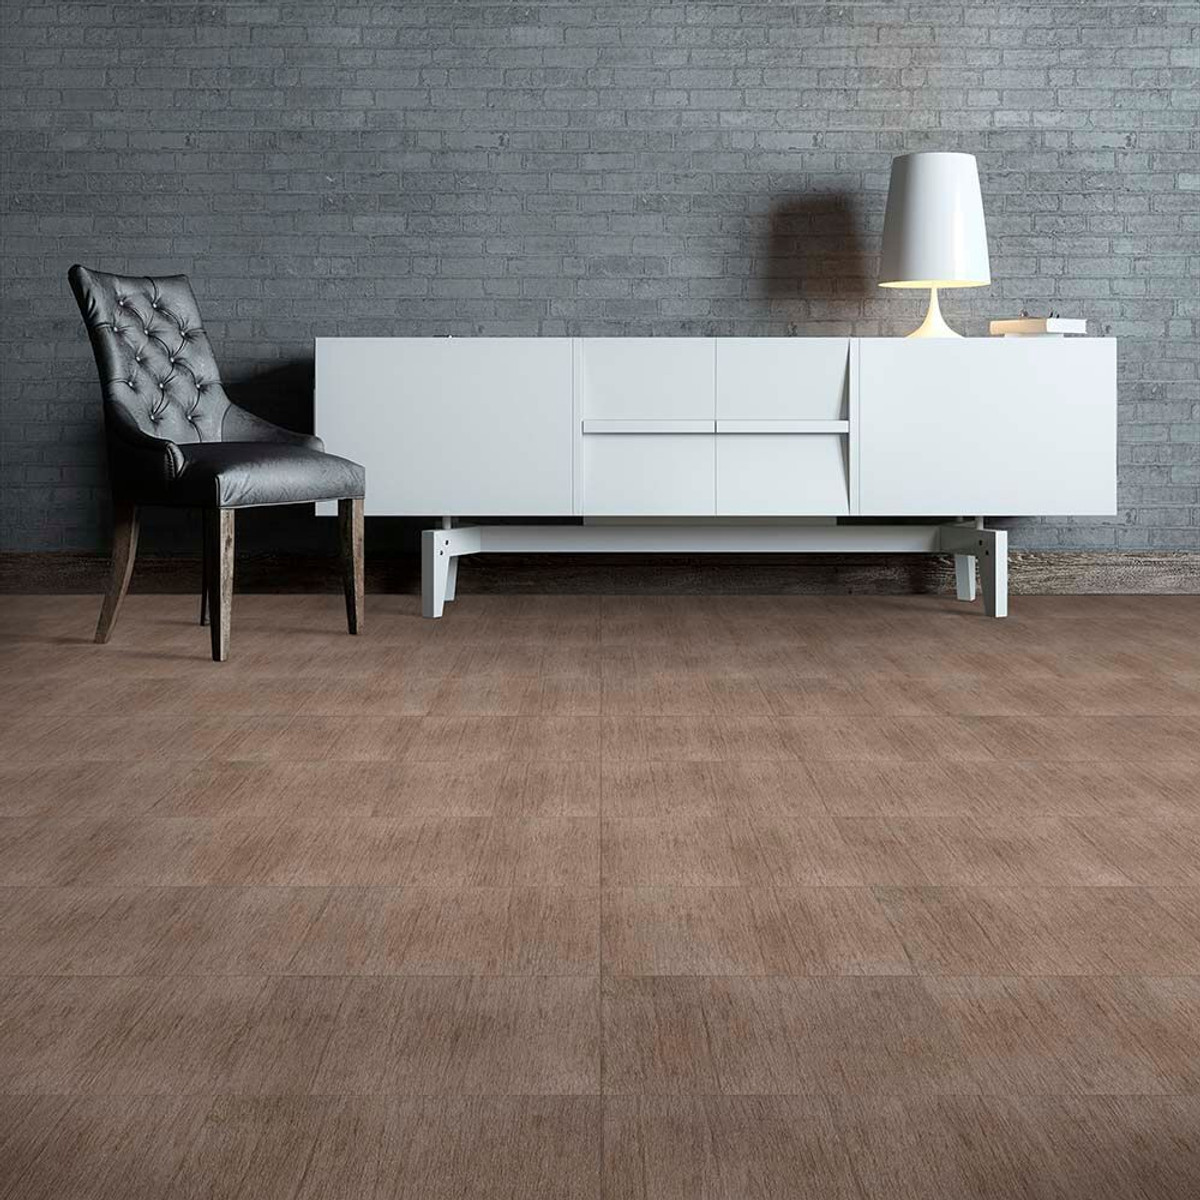 Perfection floor tile wood grain tile farmhouse wood luxury perfection floor tile wood grain farmhouse look millwood installed in an office dailygadgetfo Images